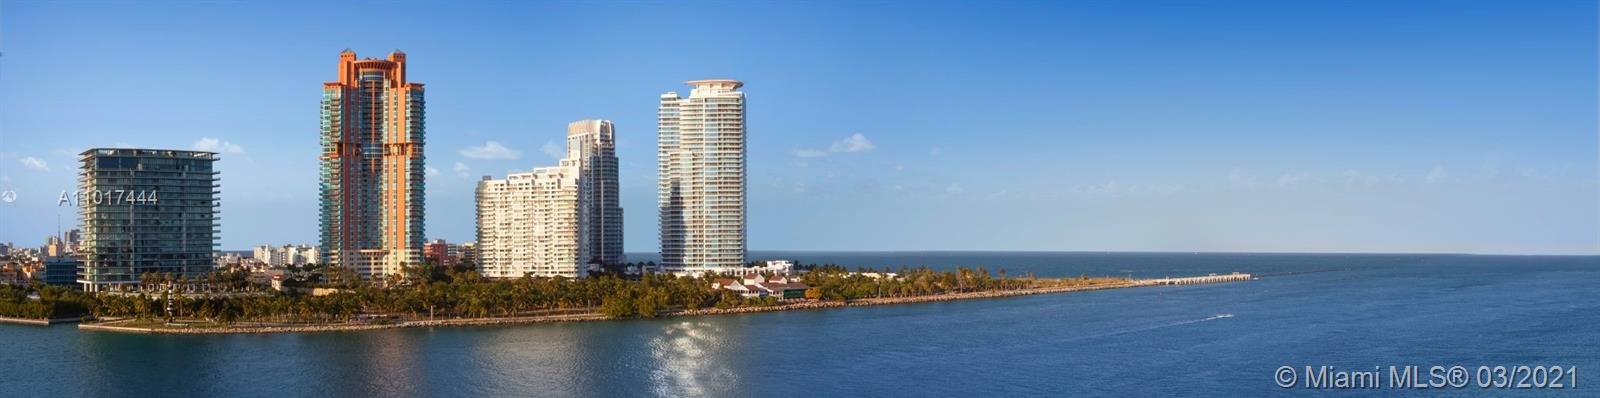 6800 Fisher Island Drive, Unit #6875 Luxury Real Estate